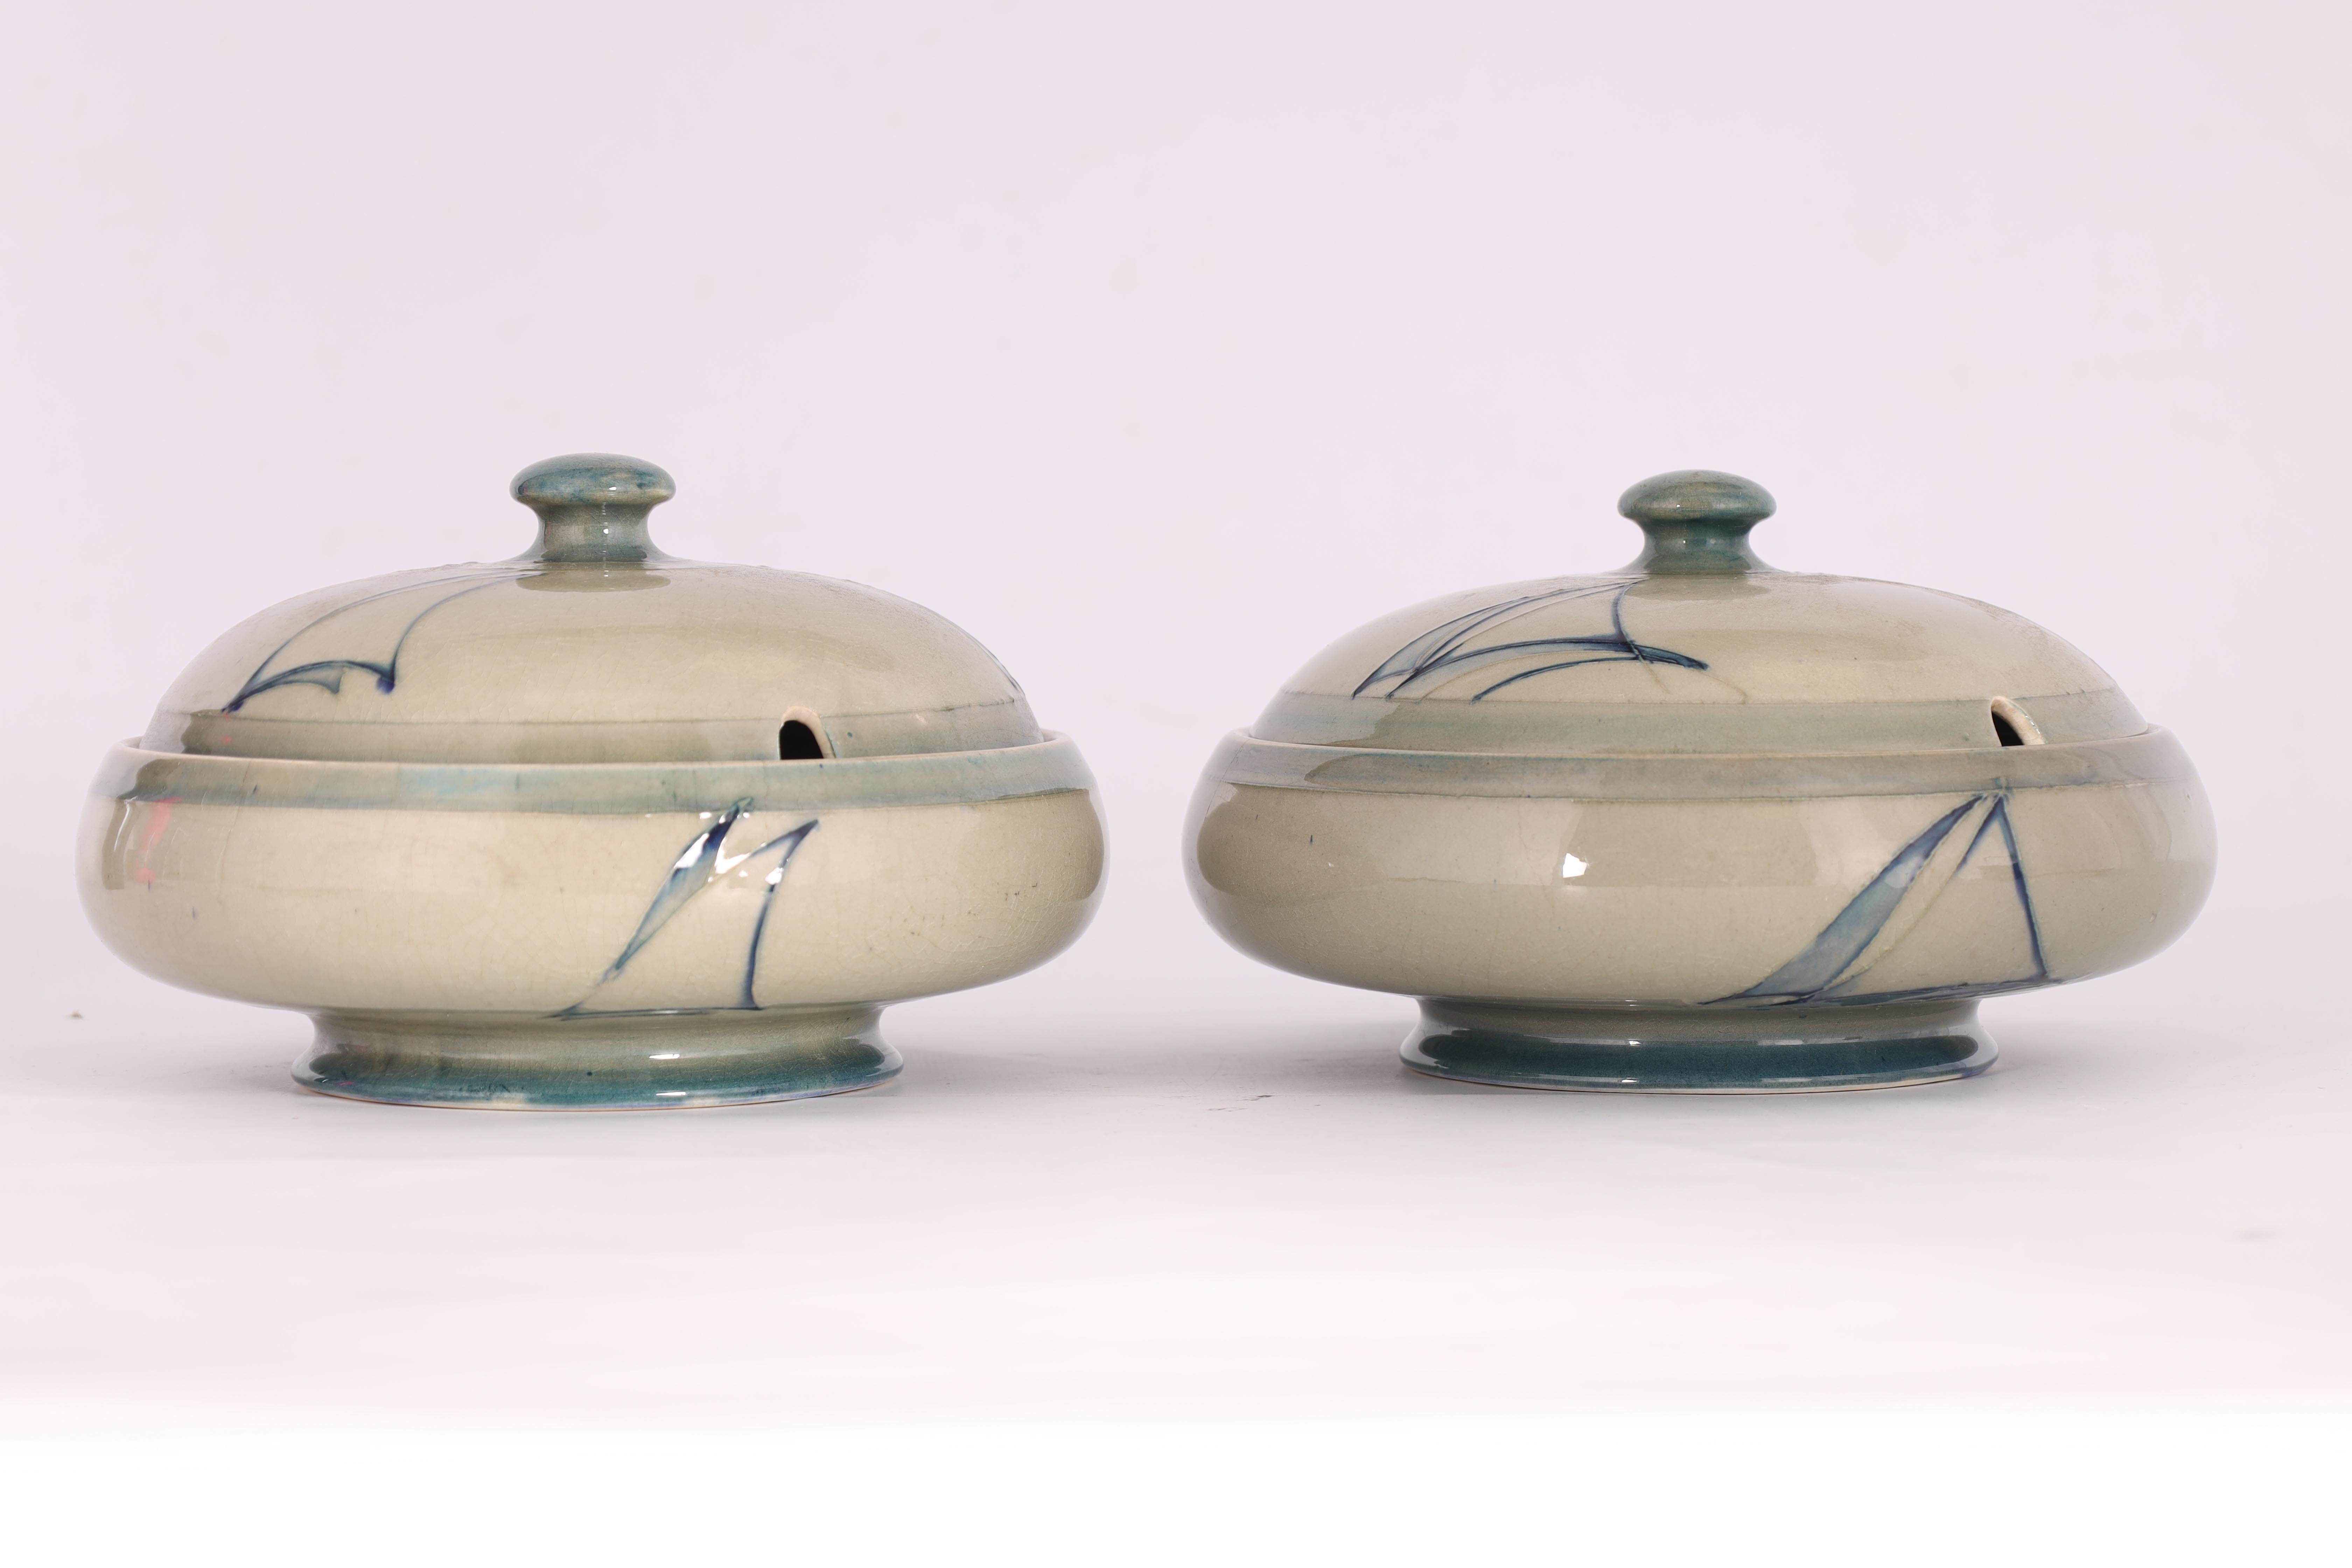 A PAIR OF MOORCROFT LIDDED TABLE TUREENS decorated in the Yacht pattern on a celadon ground, 19. - Image 11 of 12